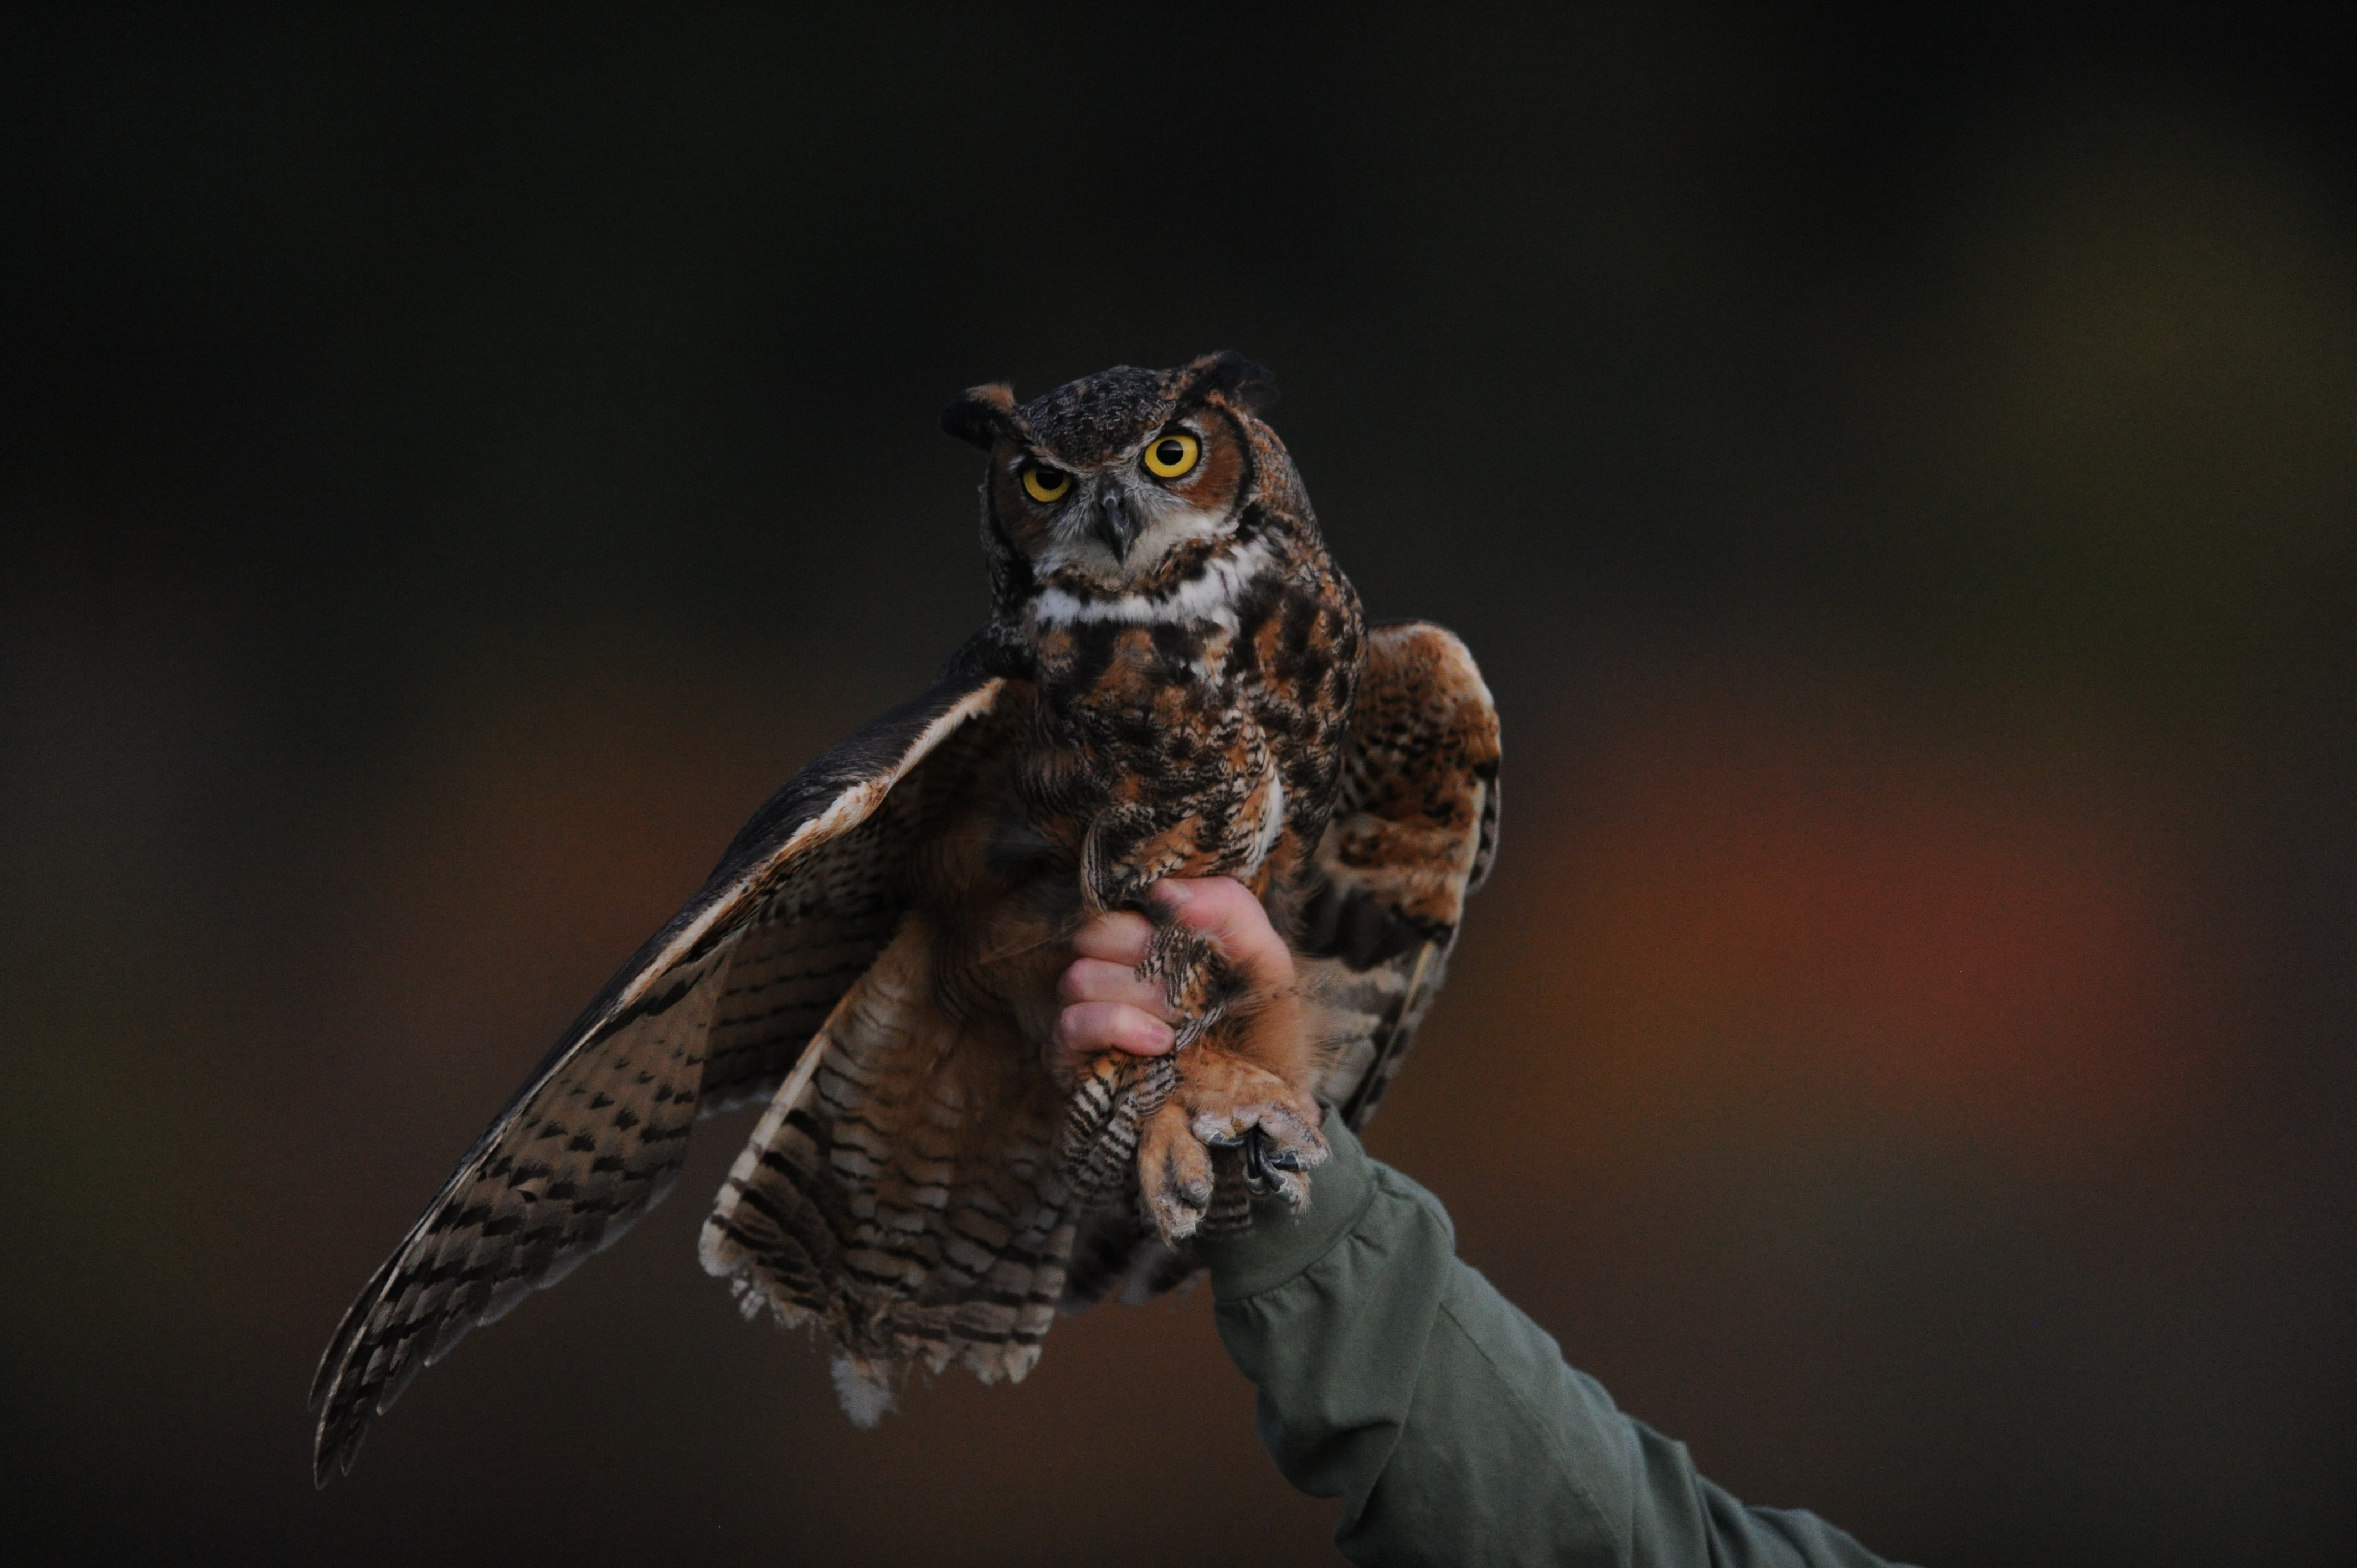 Image of an owl who appears caught by a human hand.